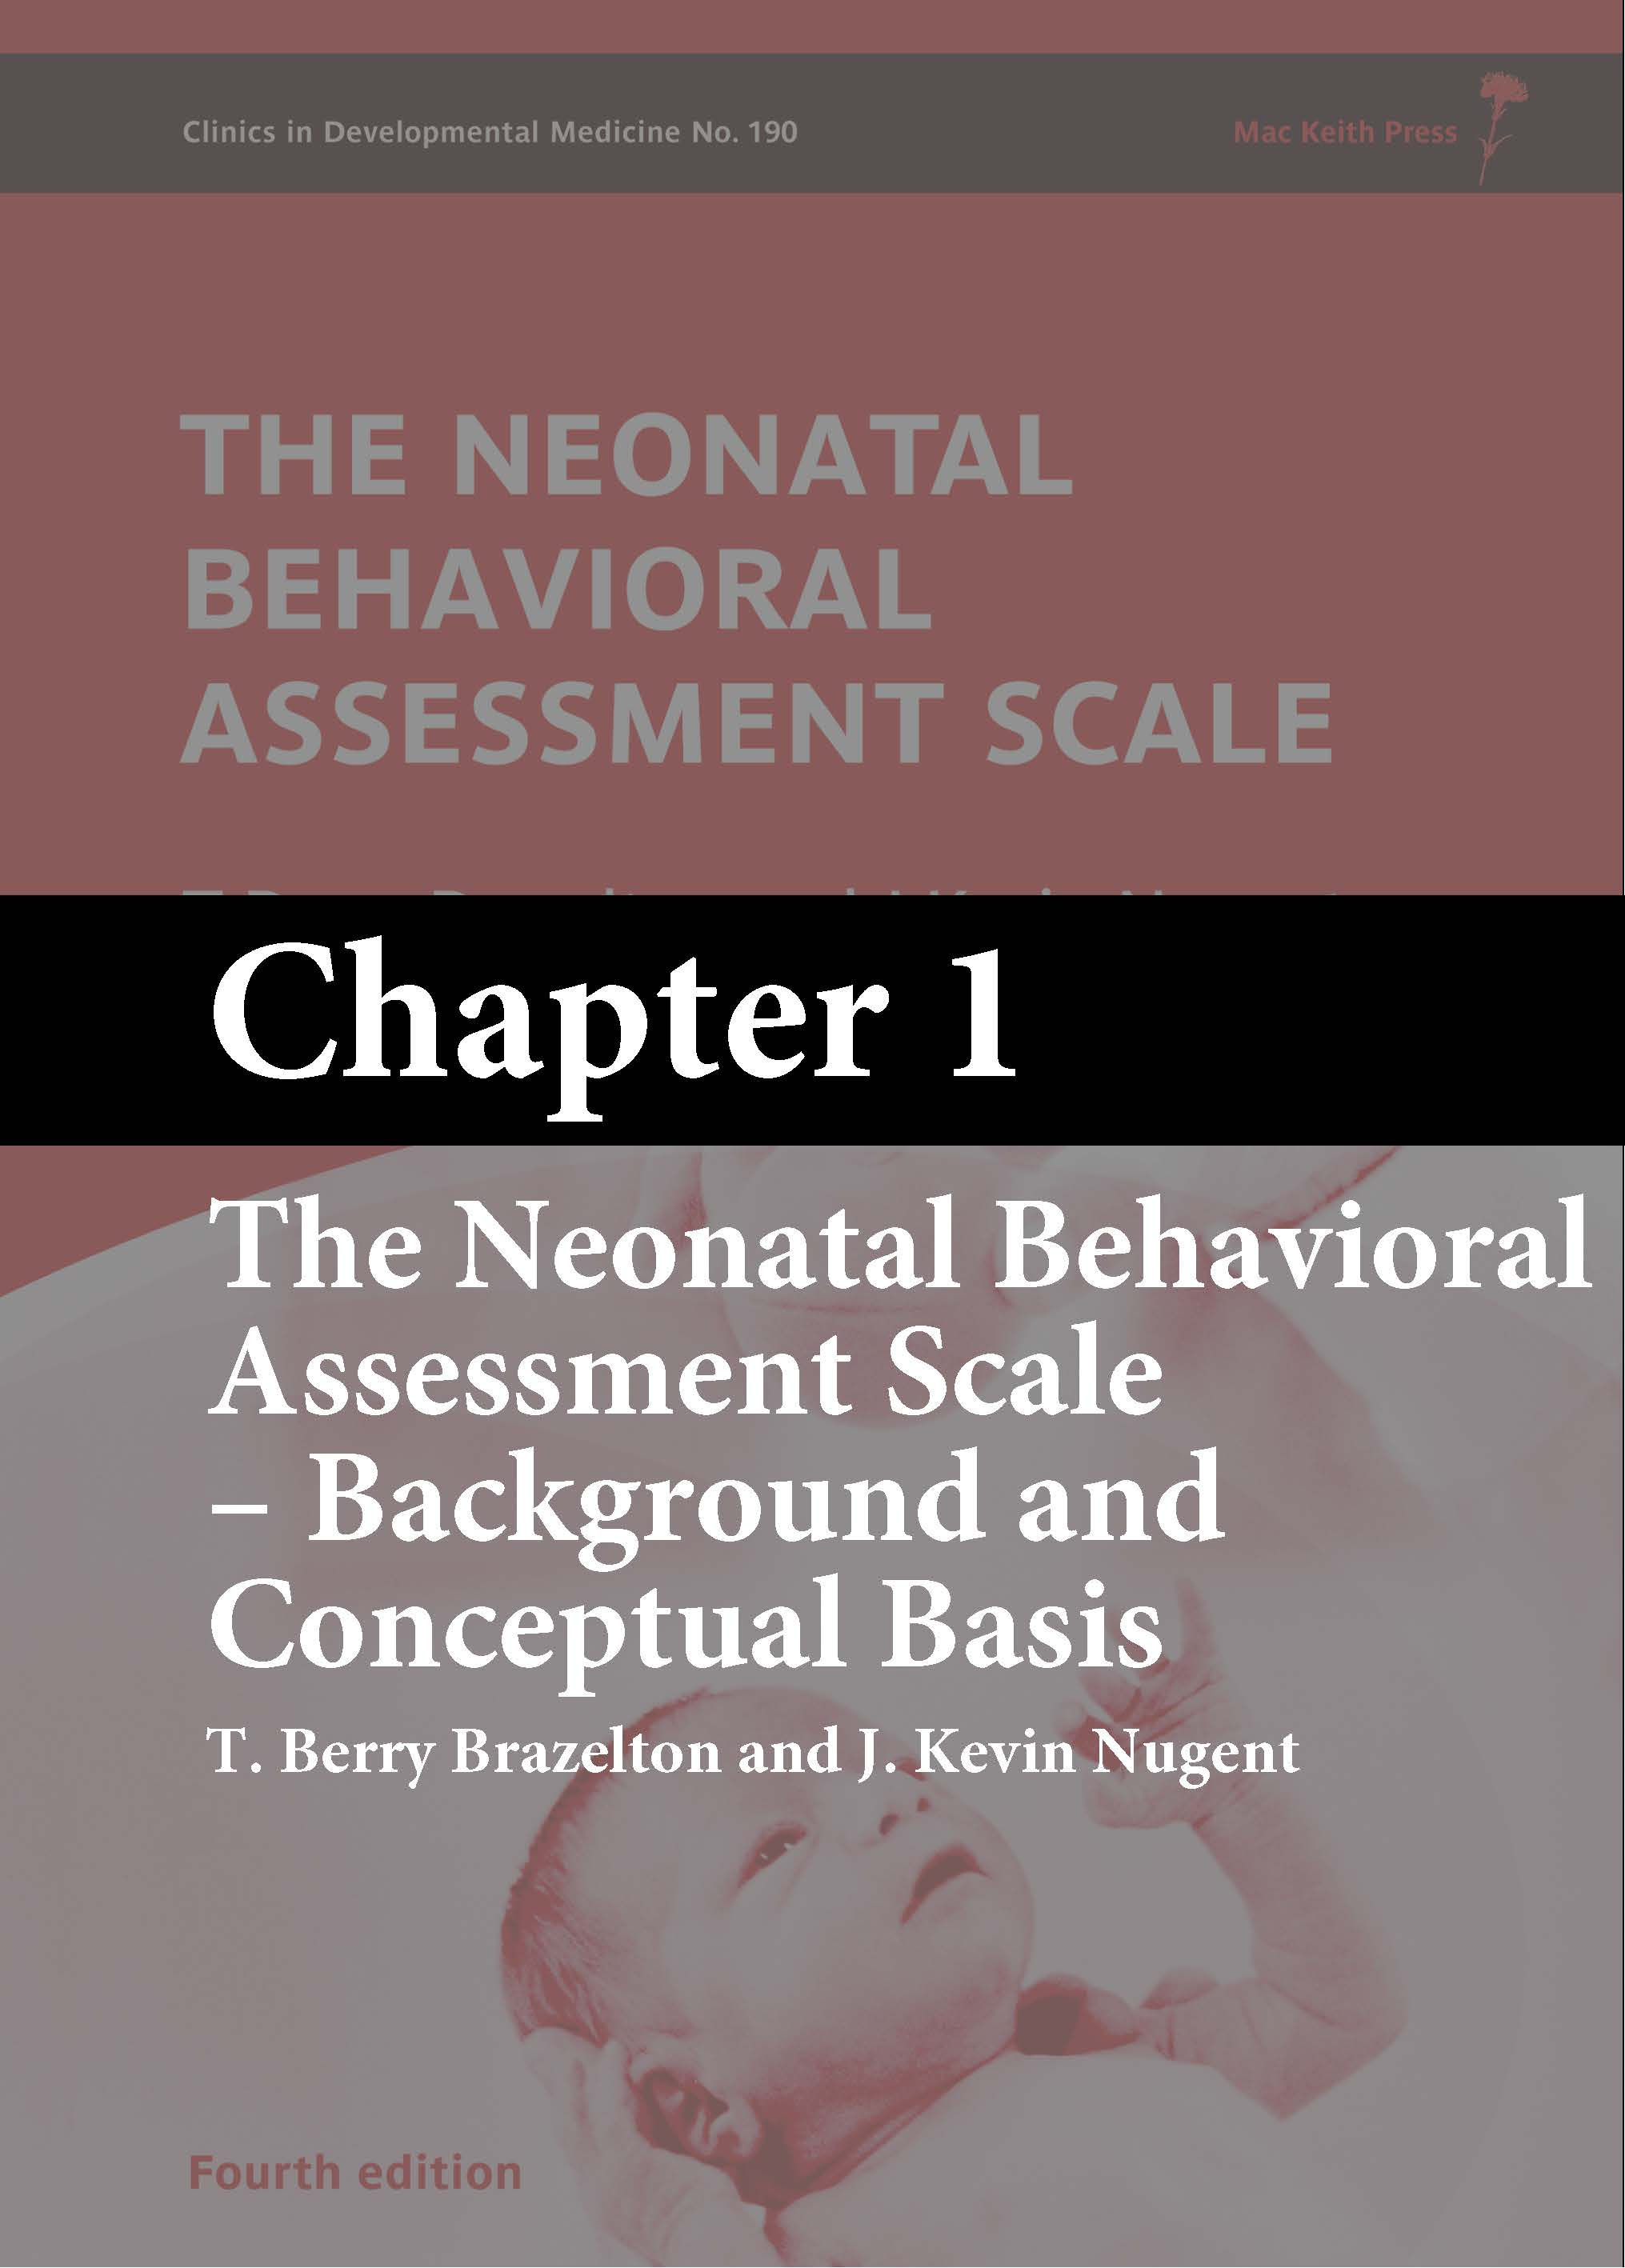 Neonatal Behavioral Assessment Scale, 4th Edition - Chapter 1: Background and Conceptual Basis (free ebook)